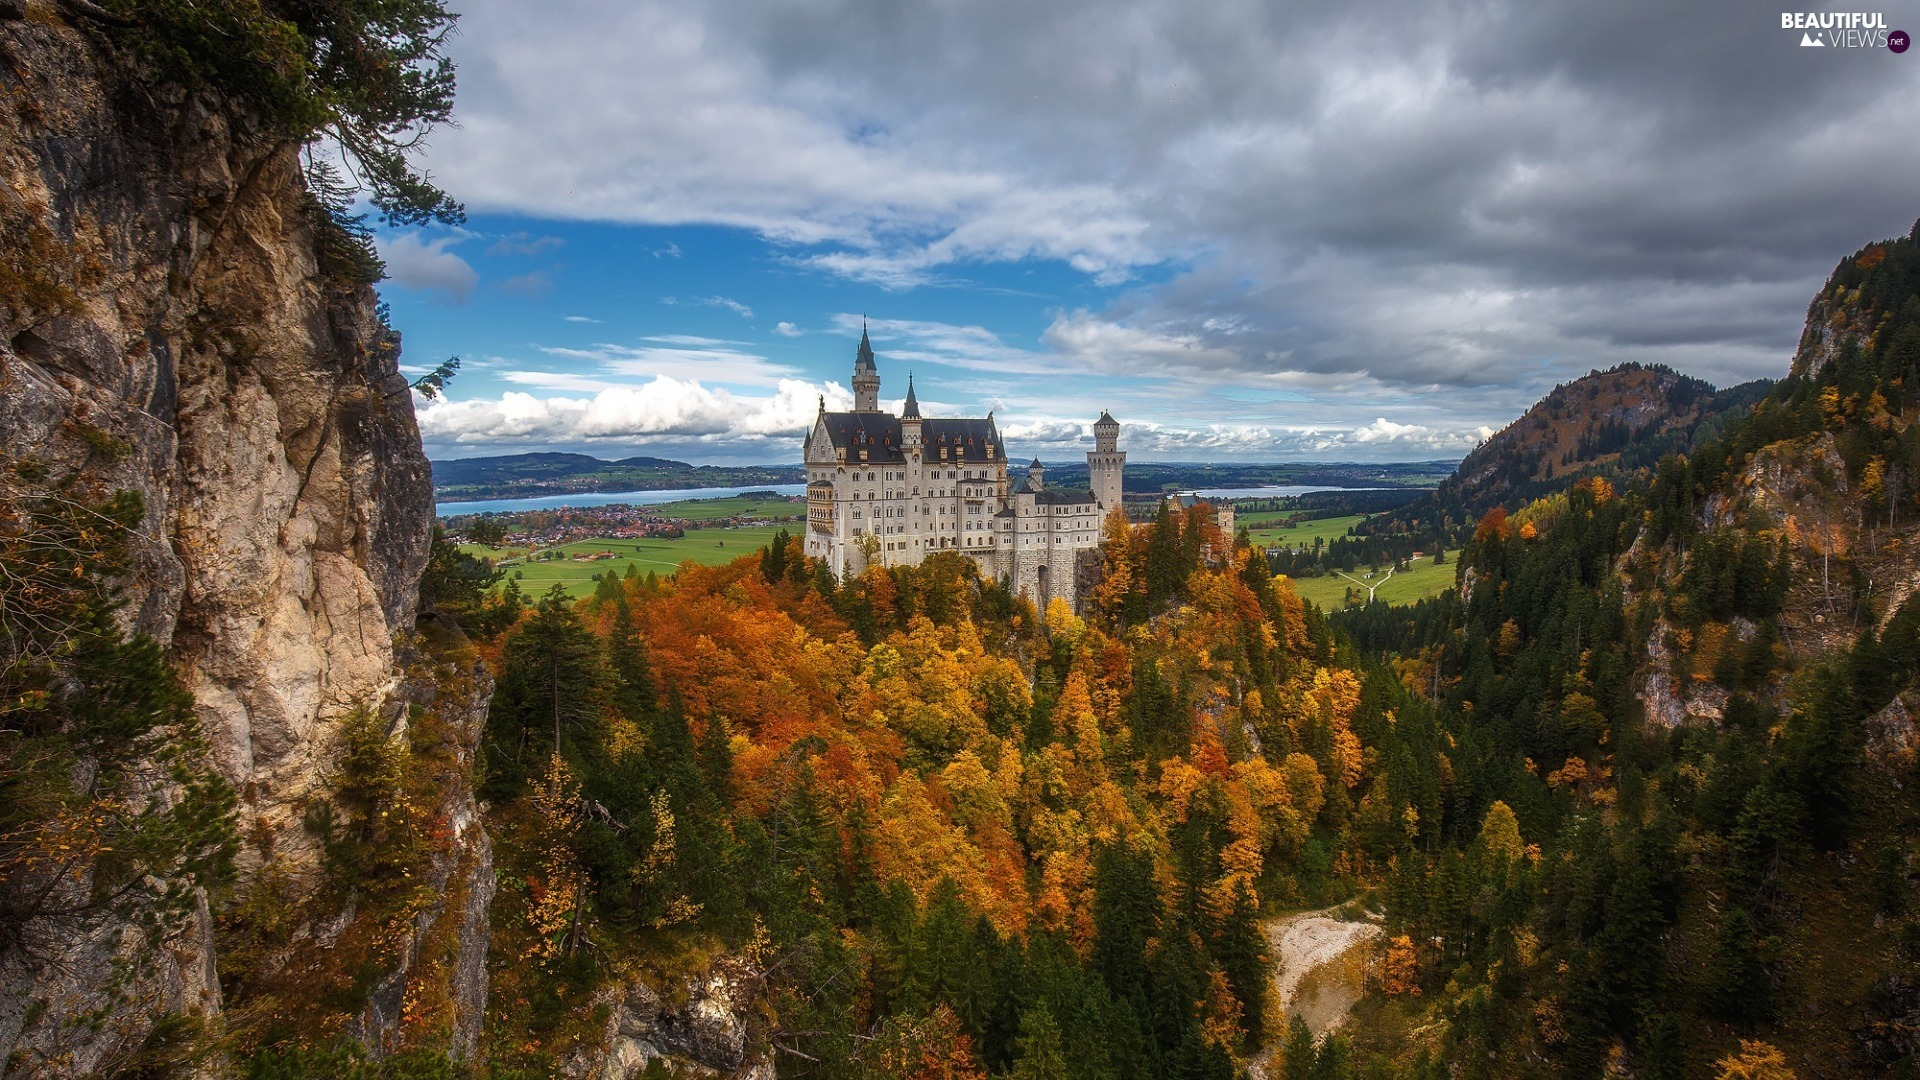 viewes, woods, rocks, Germany, trees, Bavaria, Neuschwanstein Castle